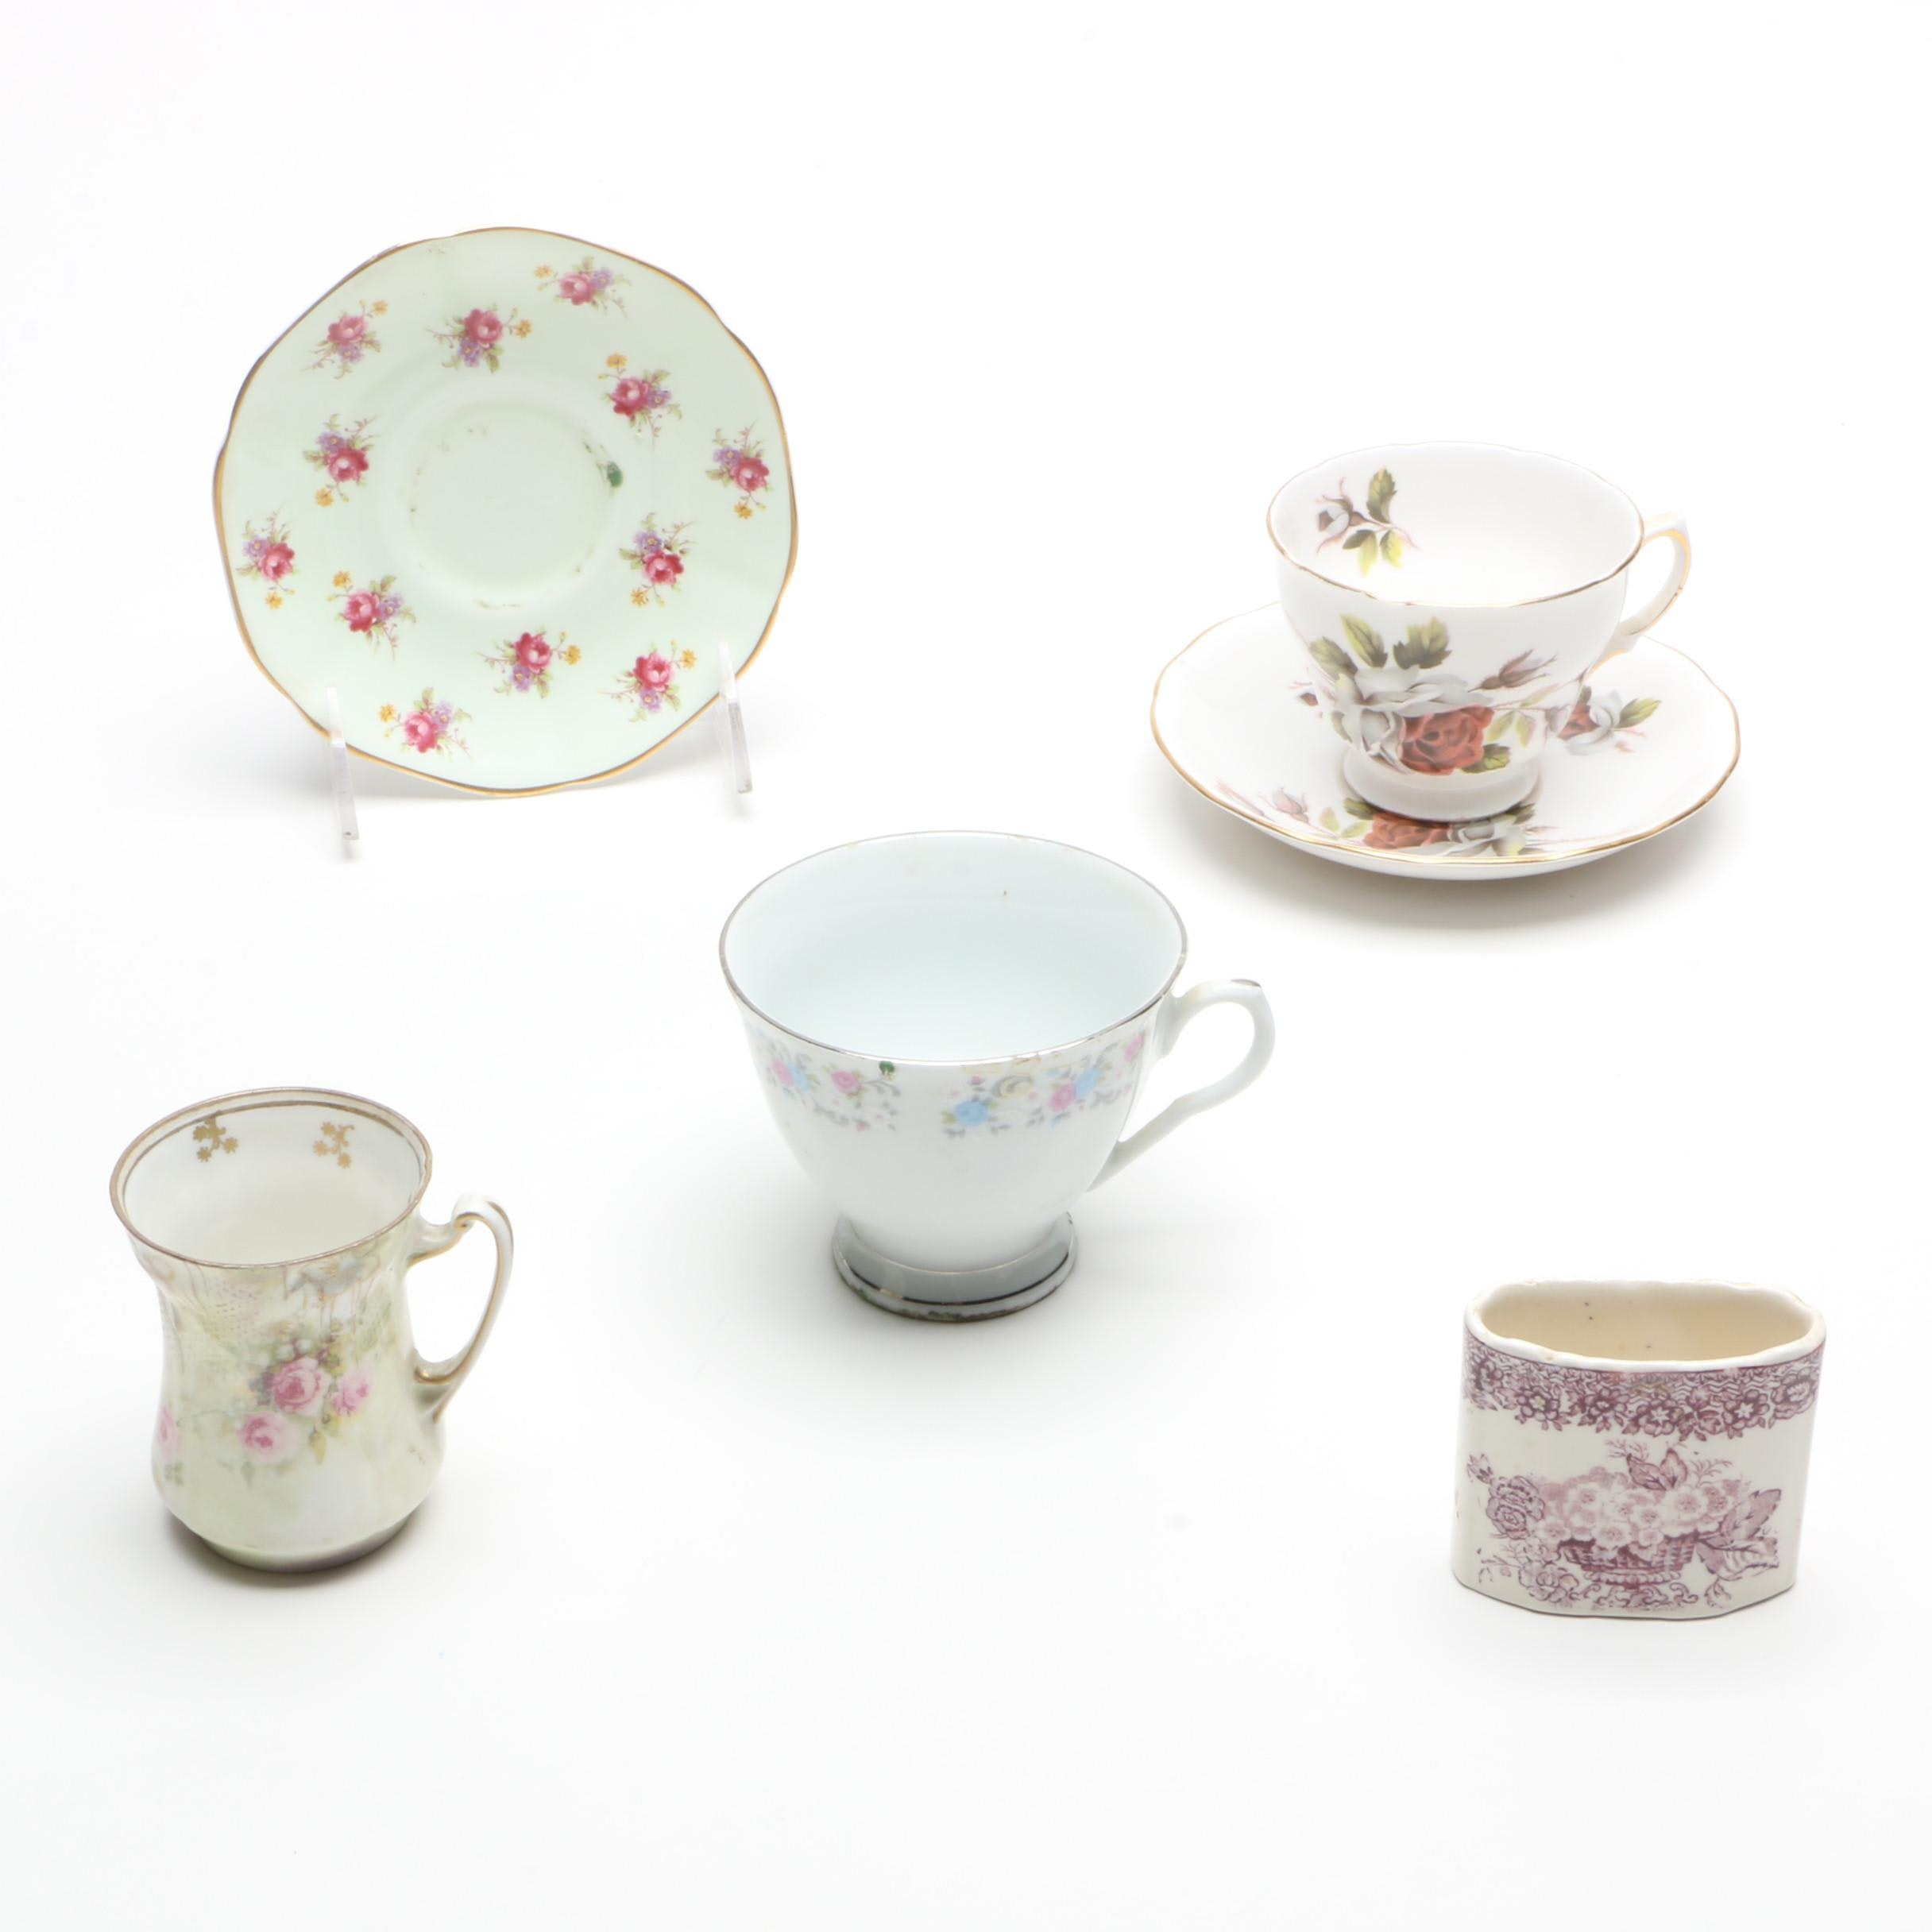 Porcelain Tableware Including R.S. Prussia